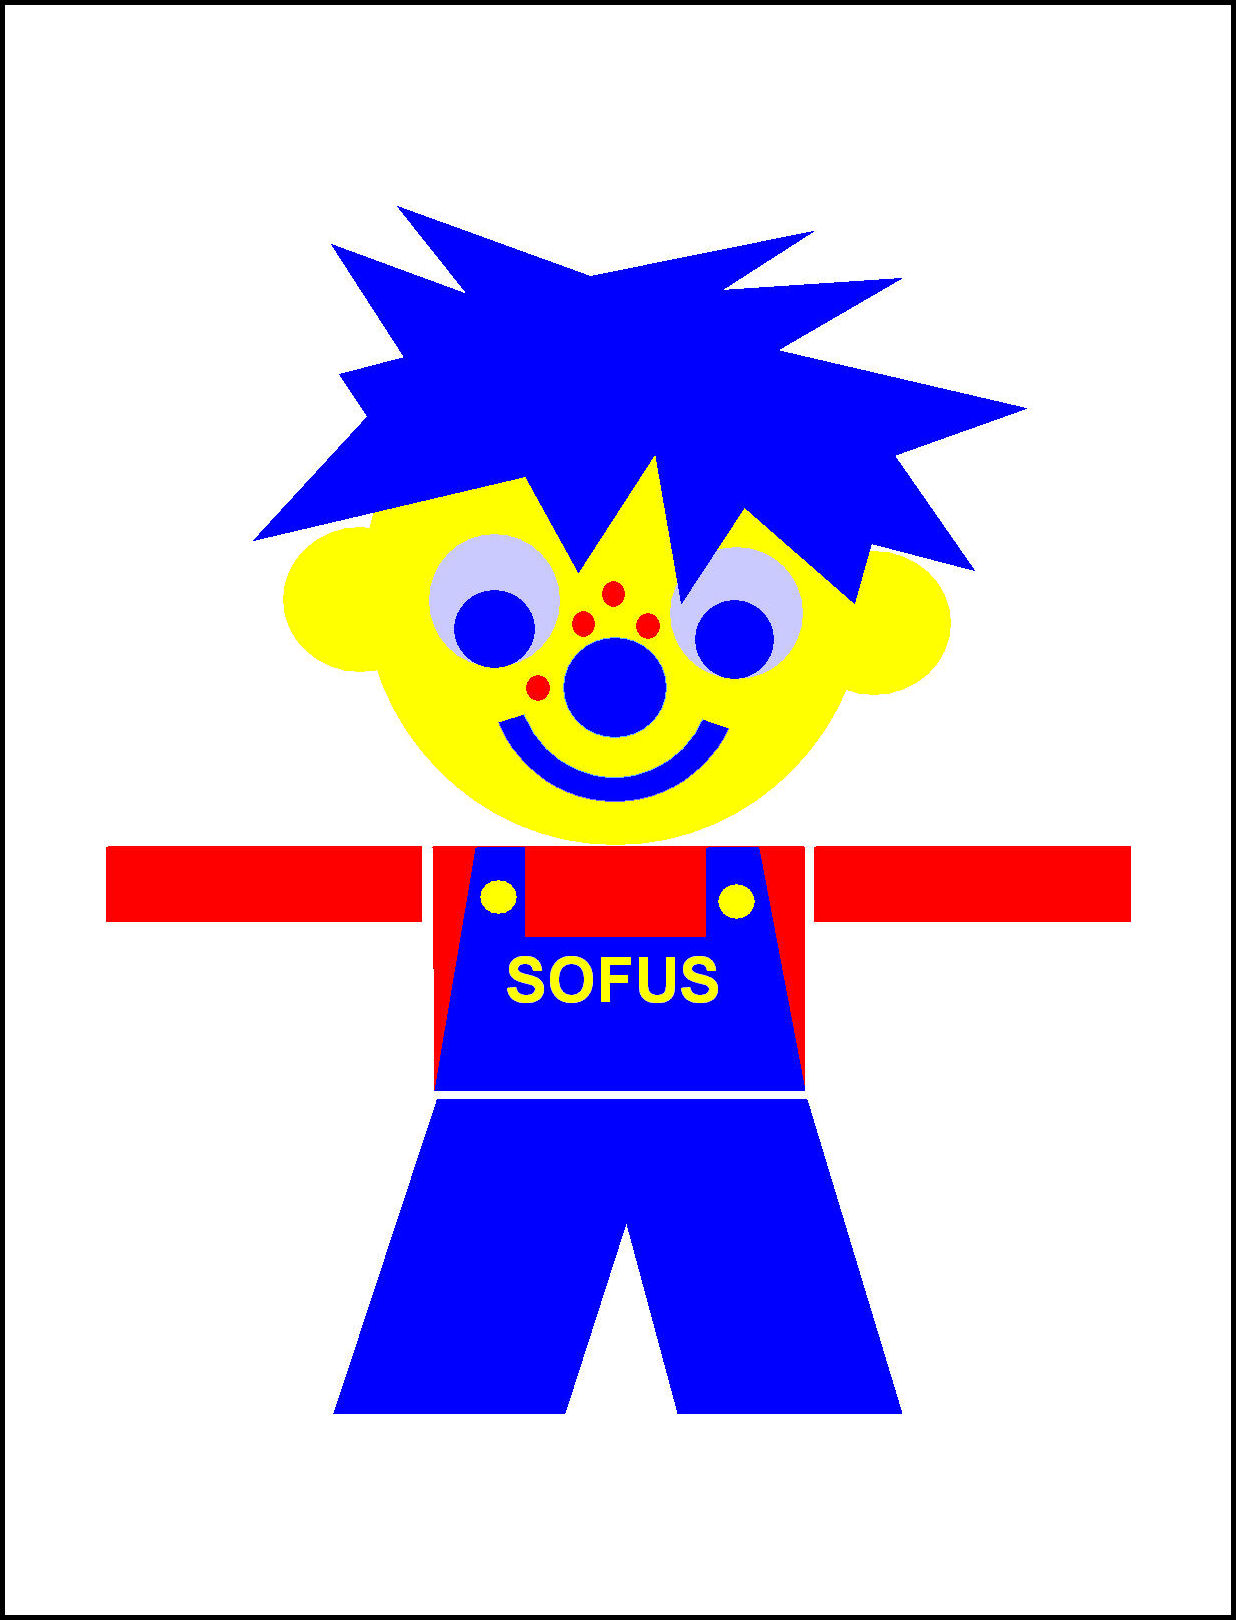 SOFUS-Interplay, blue hair,           4 freckles, large ears, a big smile. The story about SOFUS.           Storytelling implementing corporate values. By Asbjorn Lonvig,           Danish storyteller.